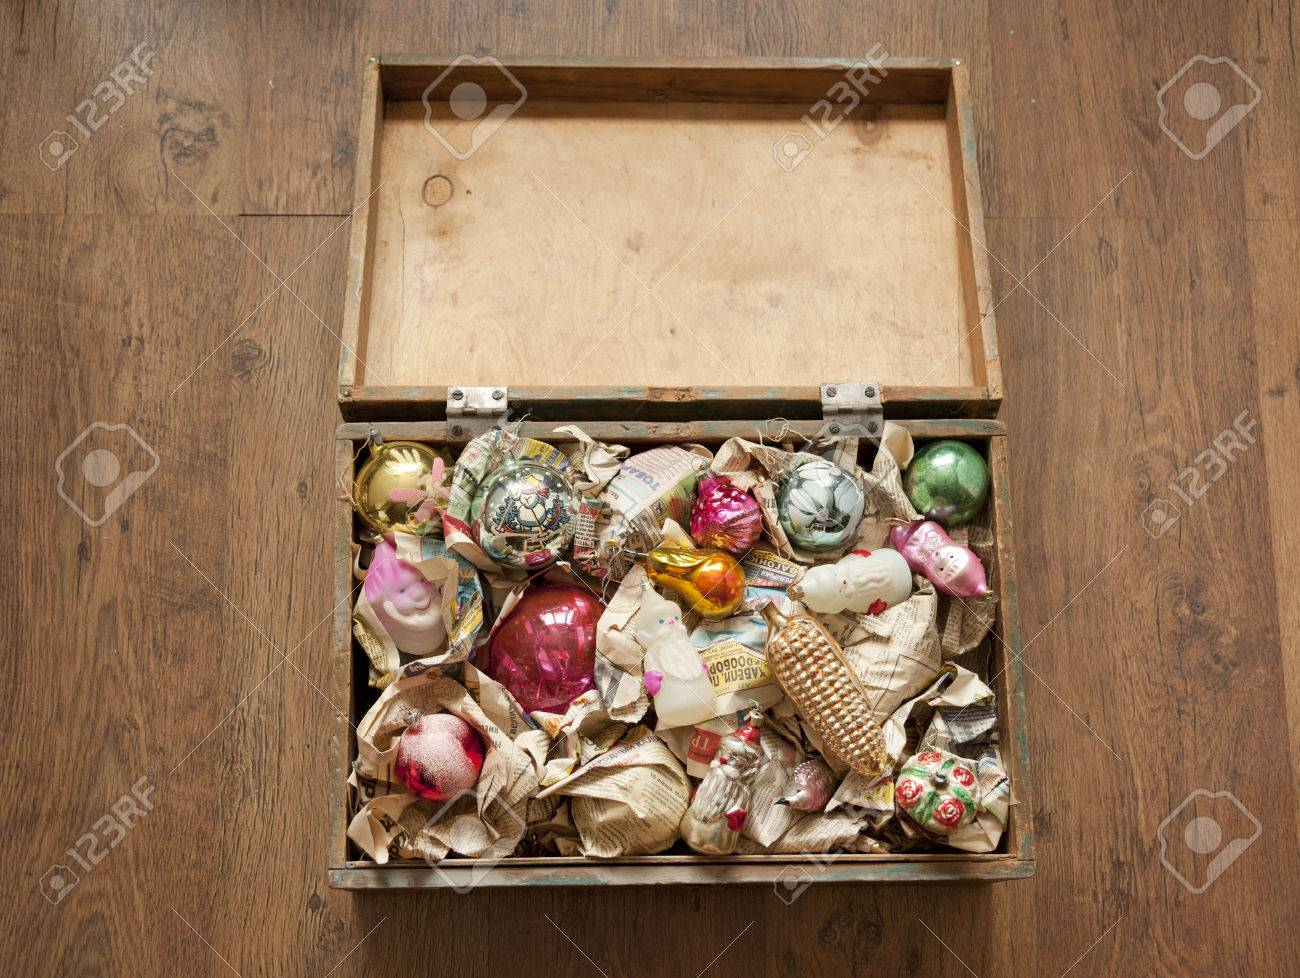 Wooden Box Of Old Christmas Toys Wrapped In Newspaper Stock Photo ...